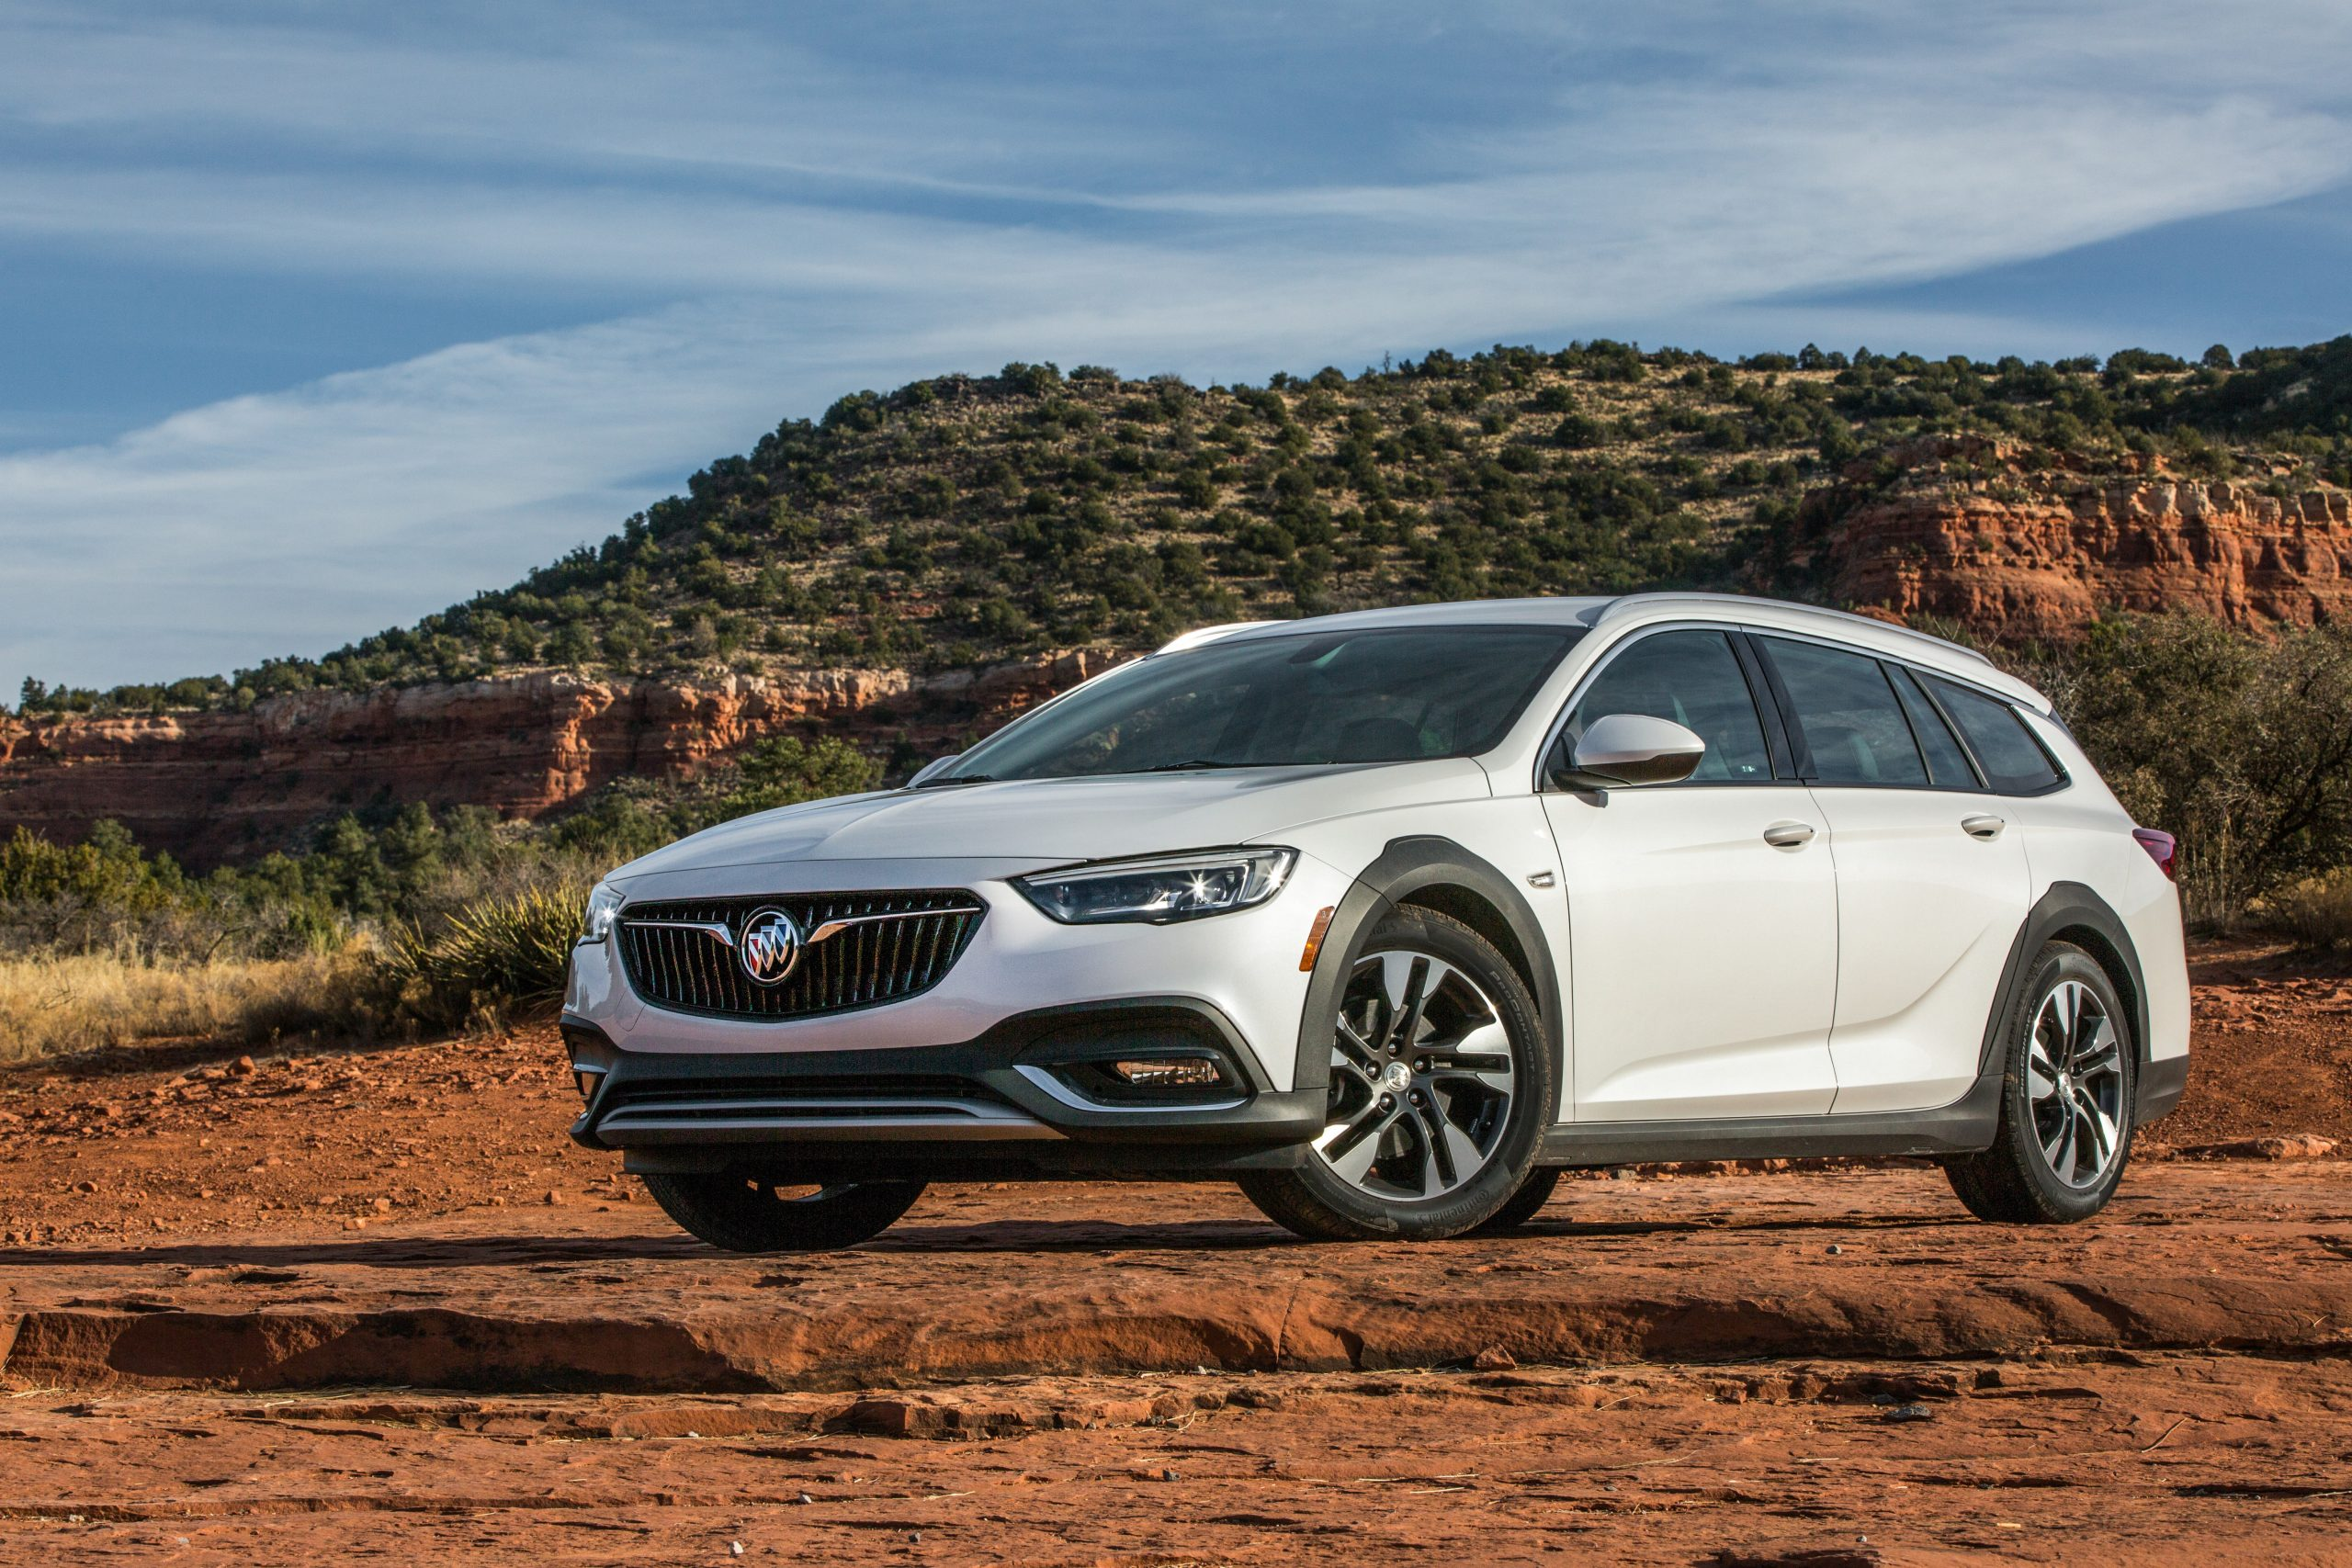 2018 Buick Regal Tourx Second Take: King Of The Wagon New 2022 Buick Regal Tourx Price, Lease, Awd